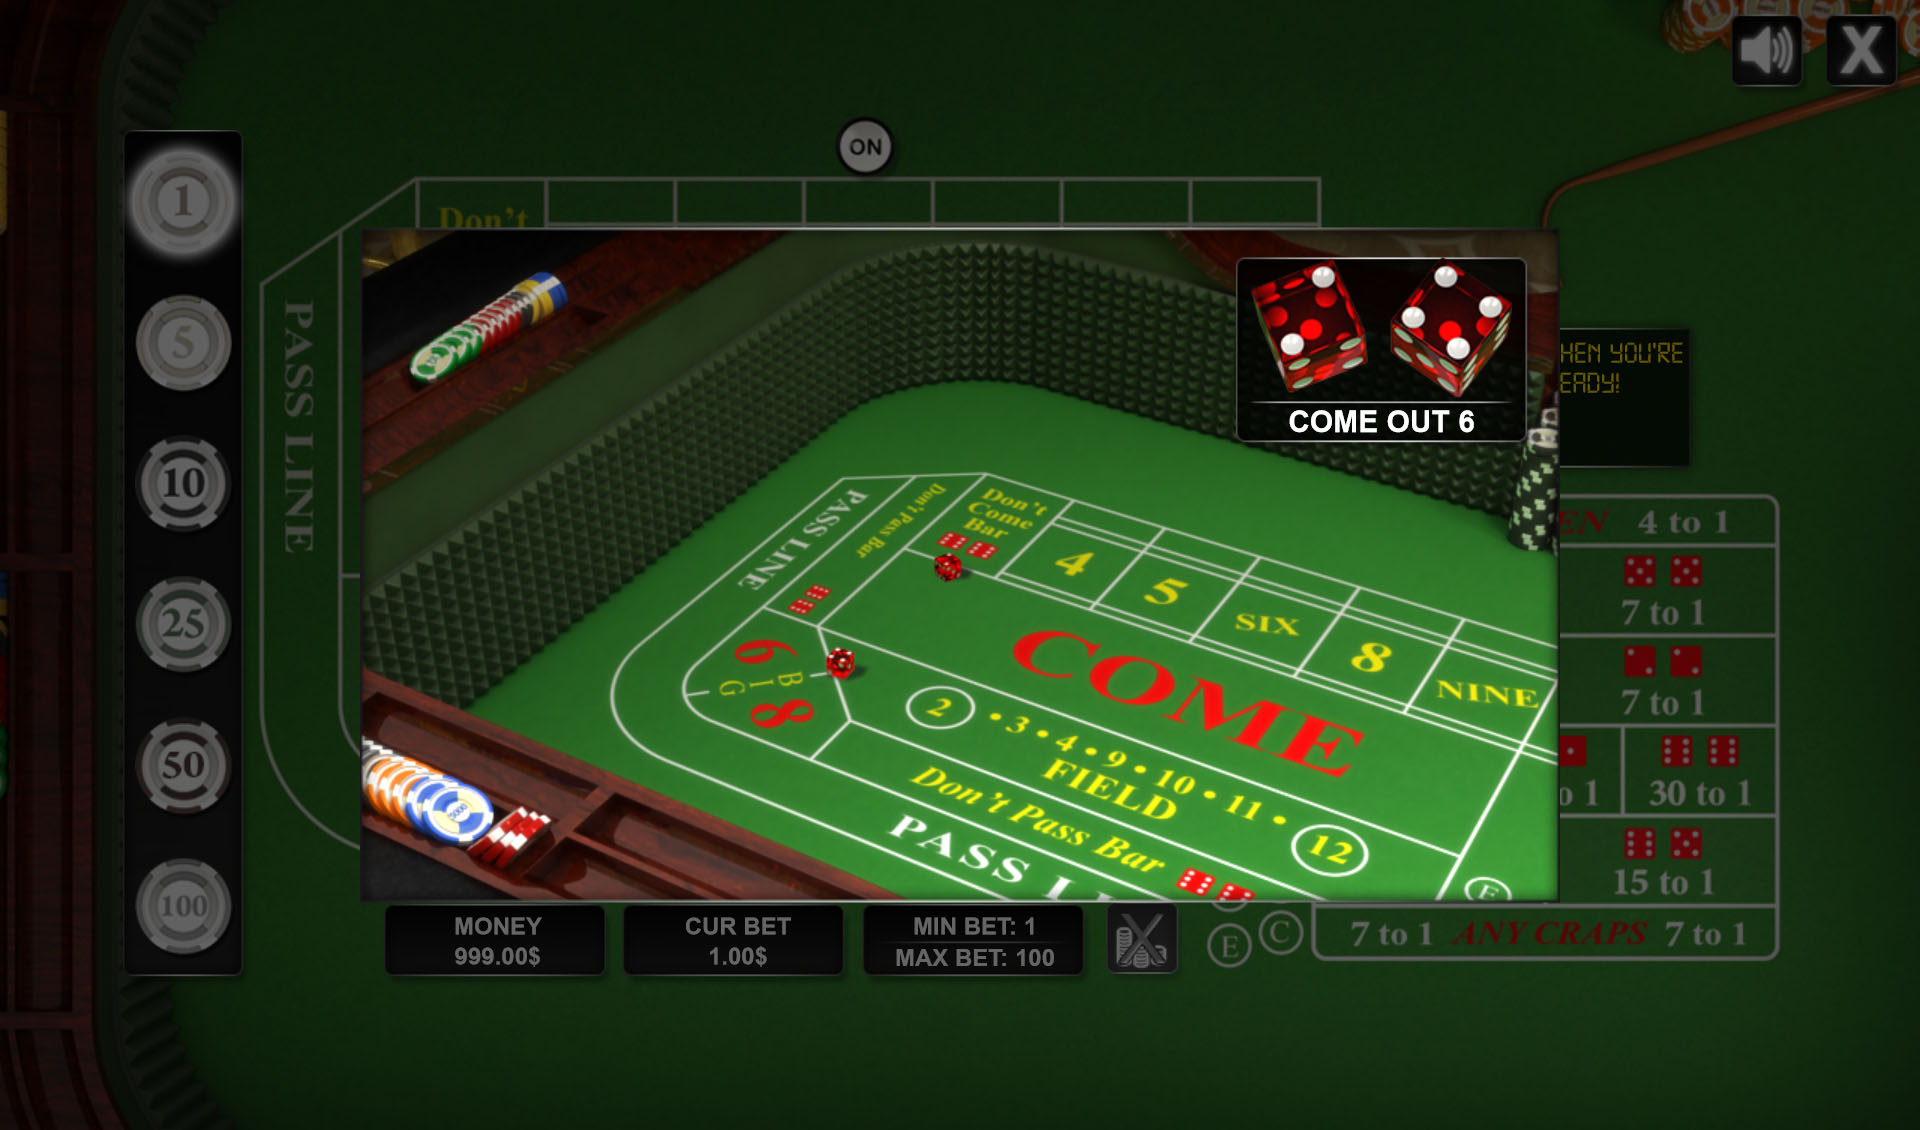 Online illegal gambling laws